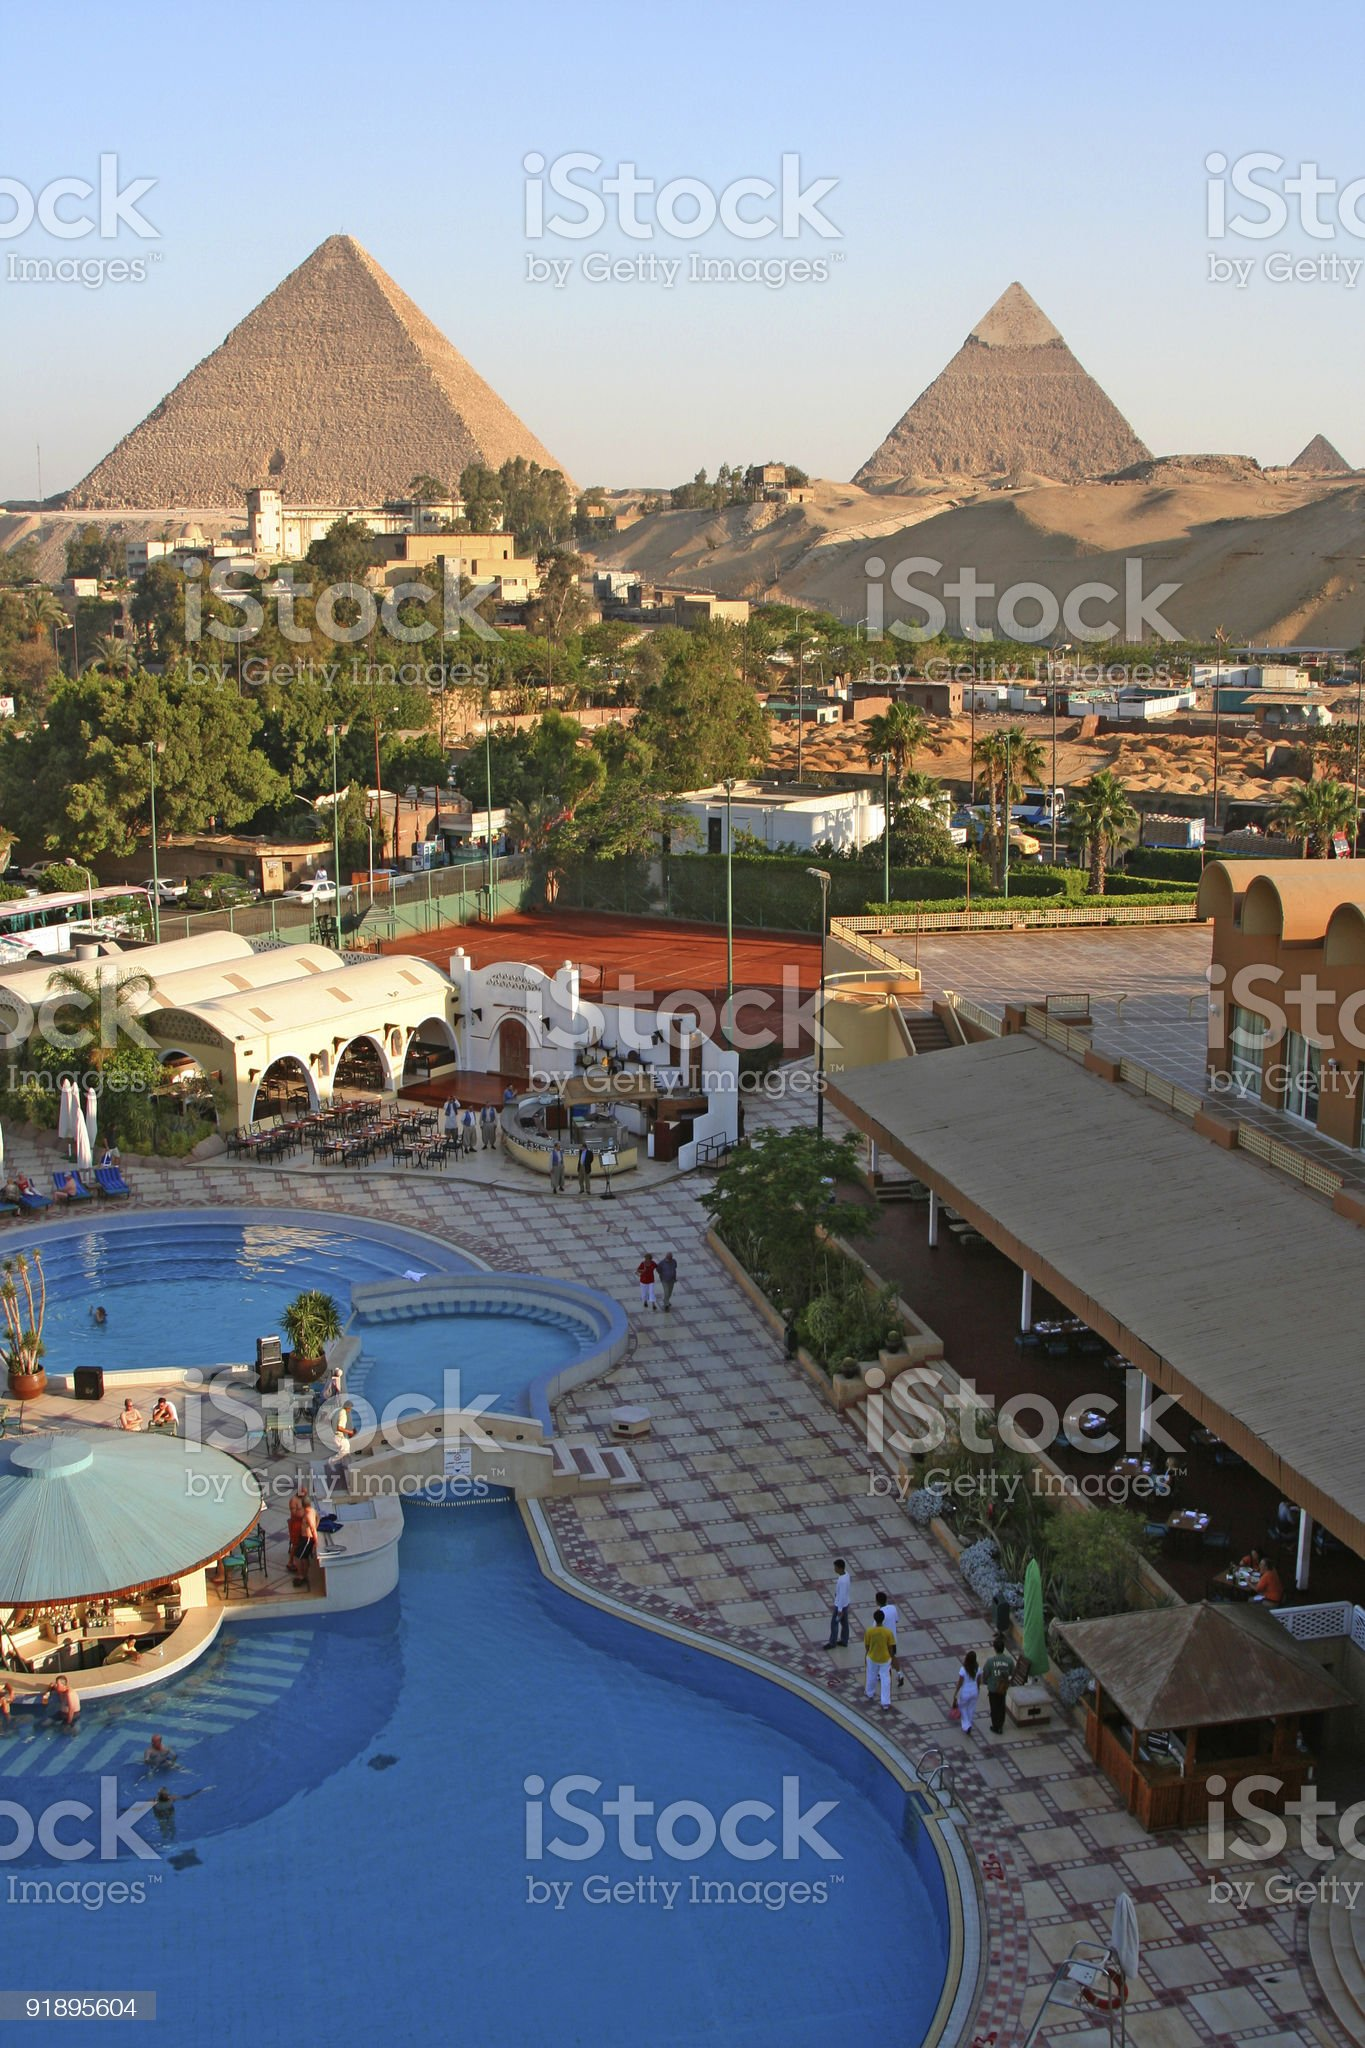 Pyramids by the Pool royalty-free stock photo